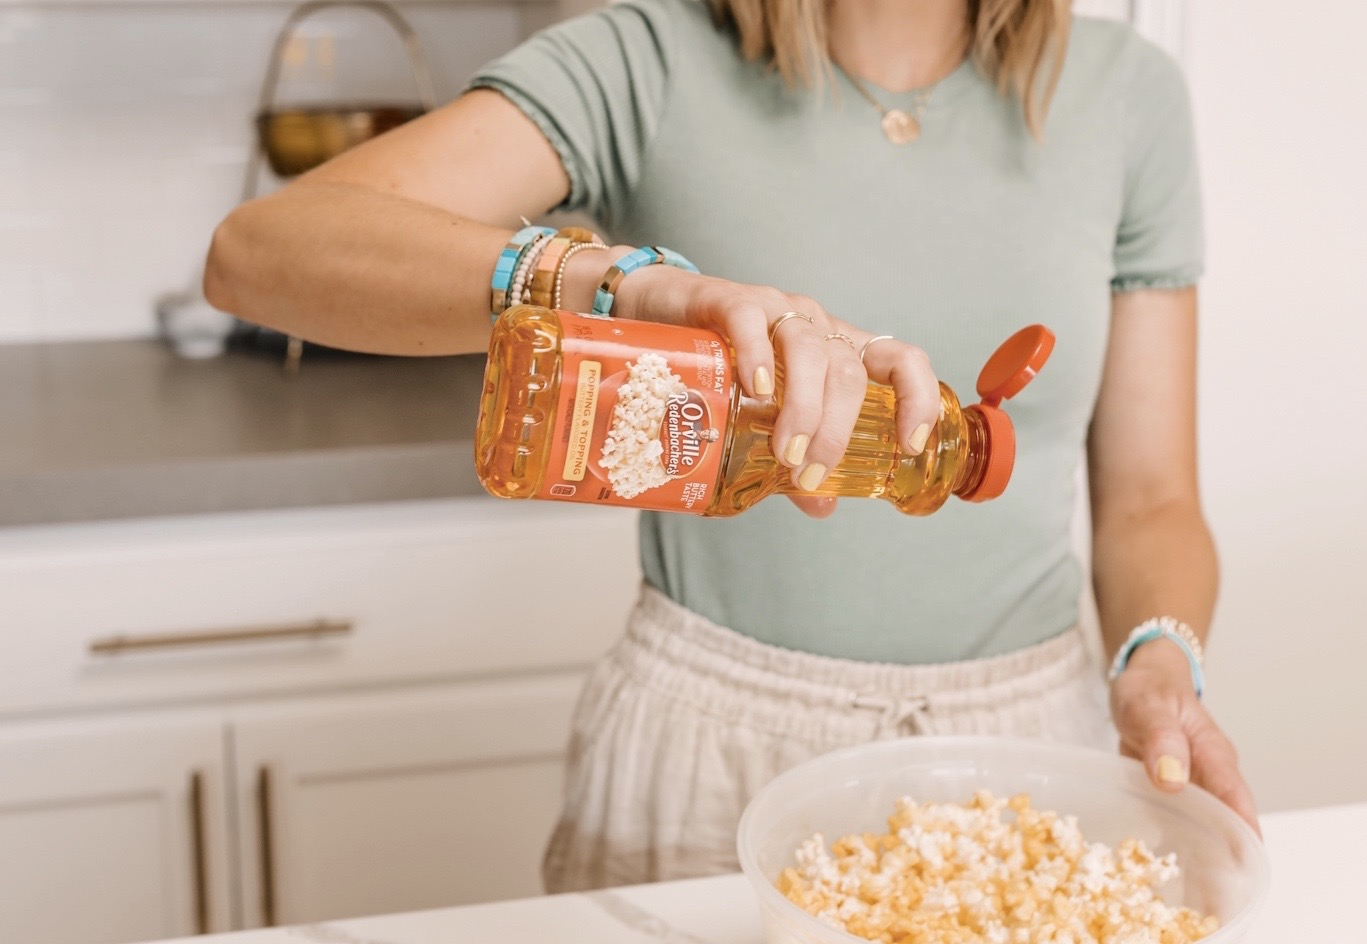 Orville Redenbacher's Popcorn by popular San Diego lifestyle blog, Navy Grace: image of a woman putting Orville Redenbacher's popping and topping on a bowl of popcorn.